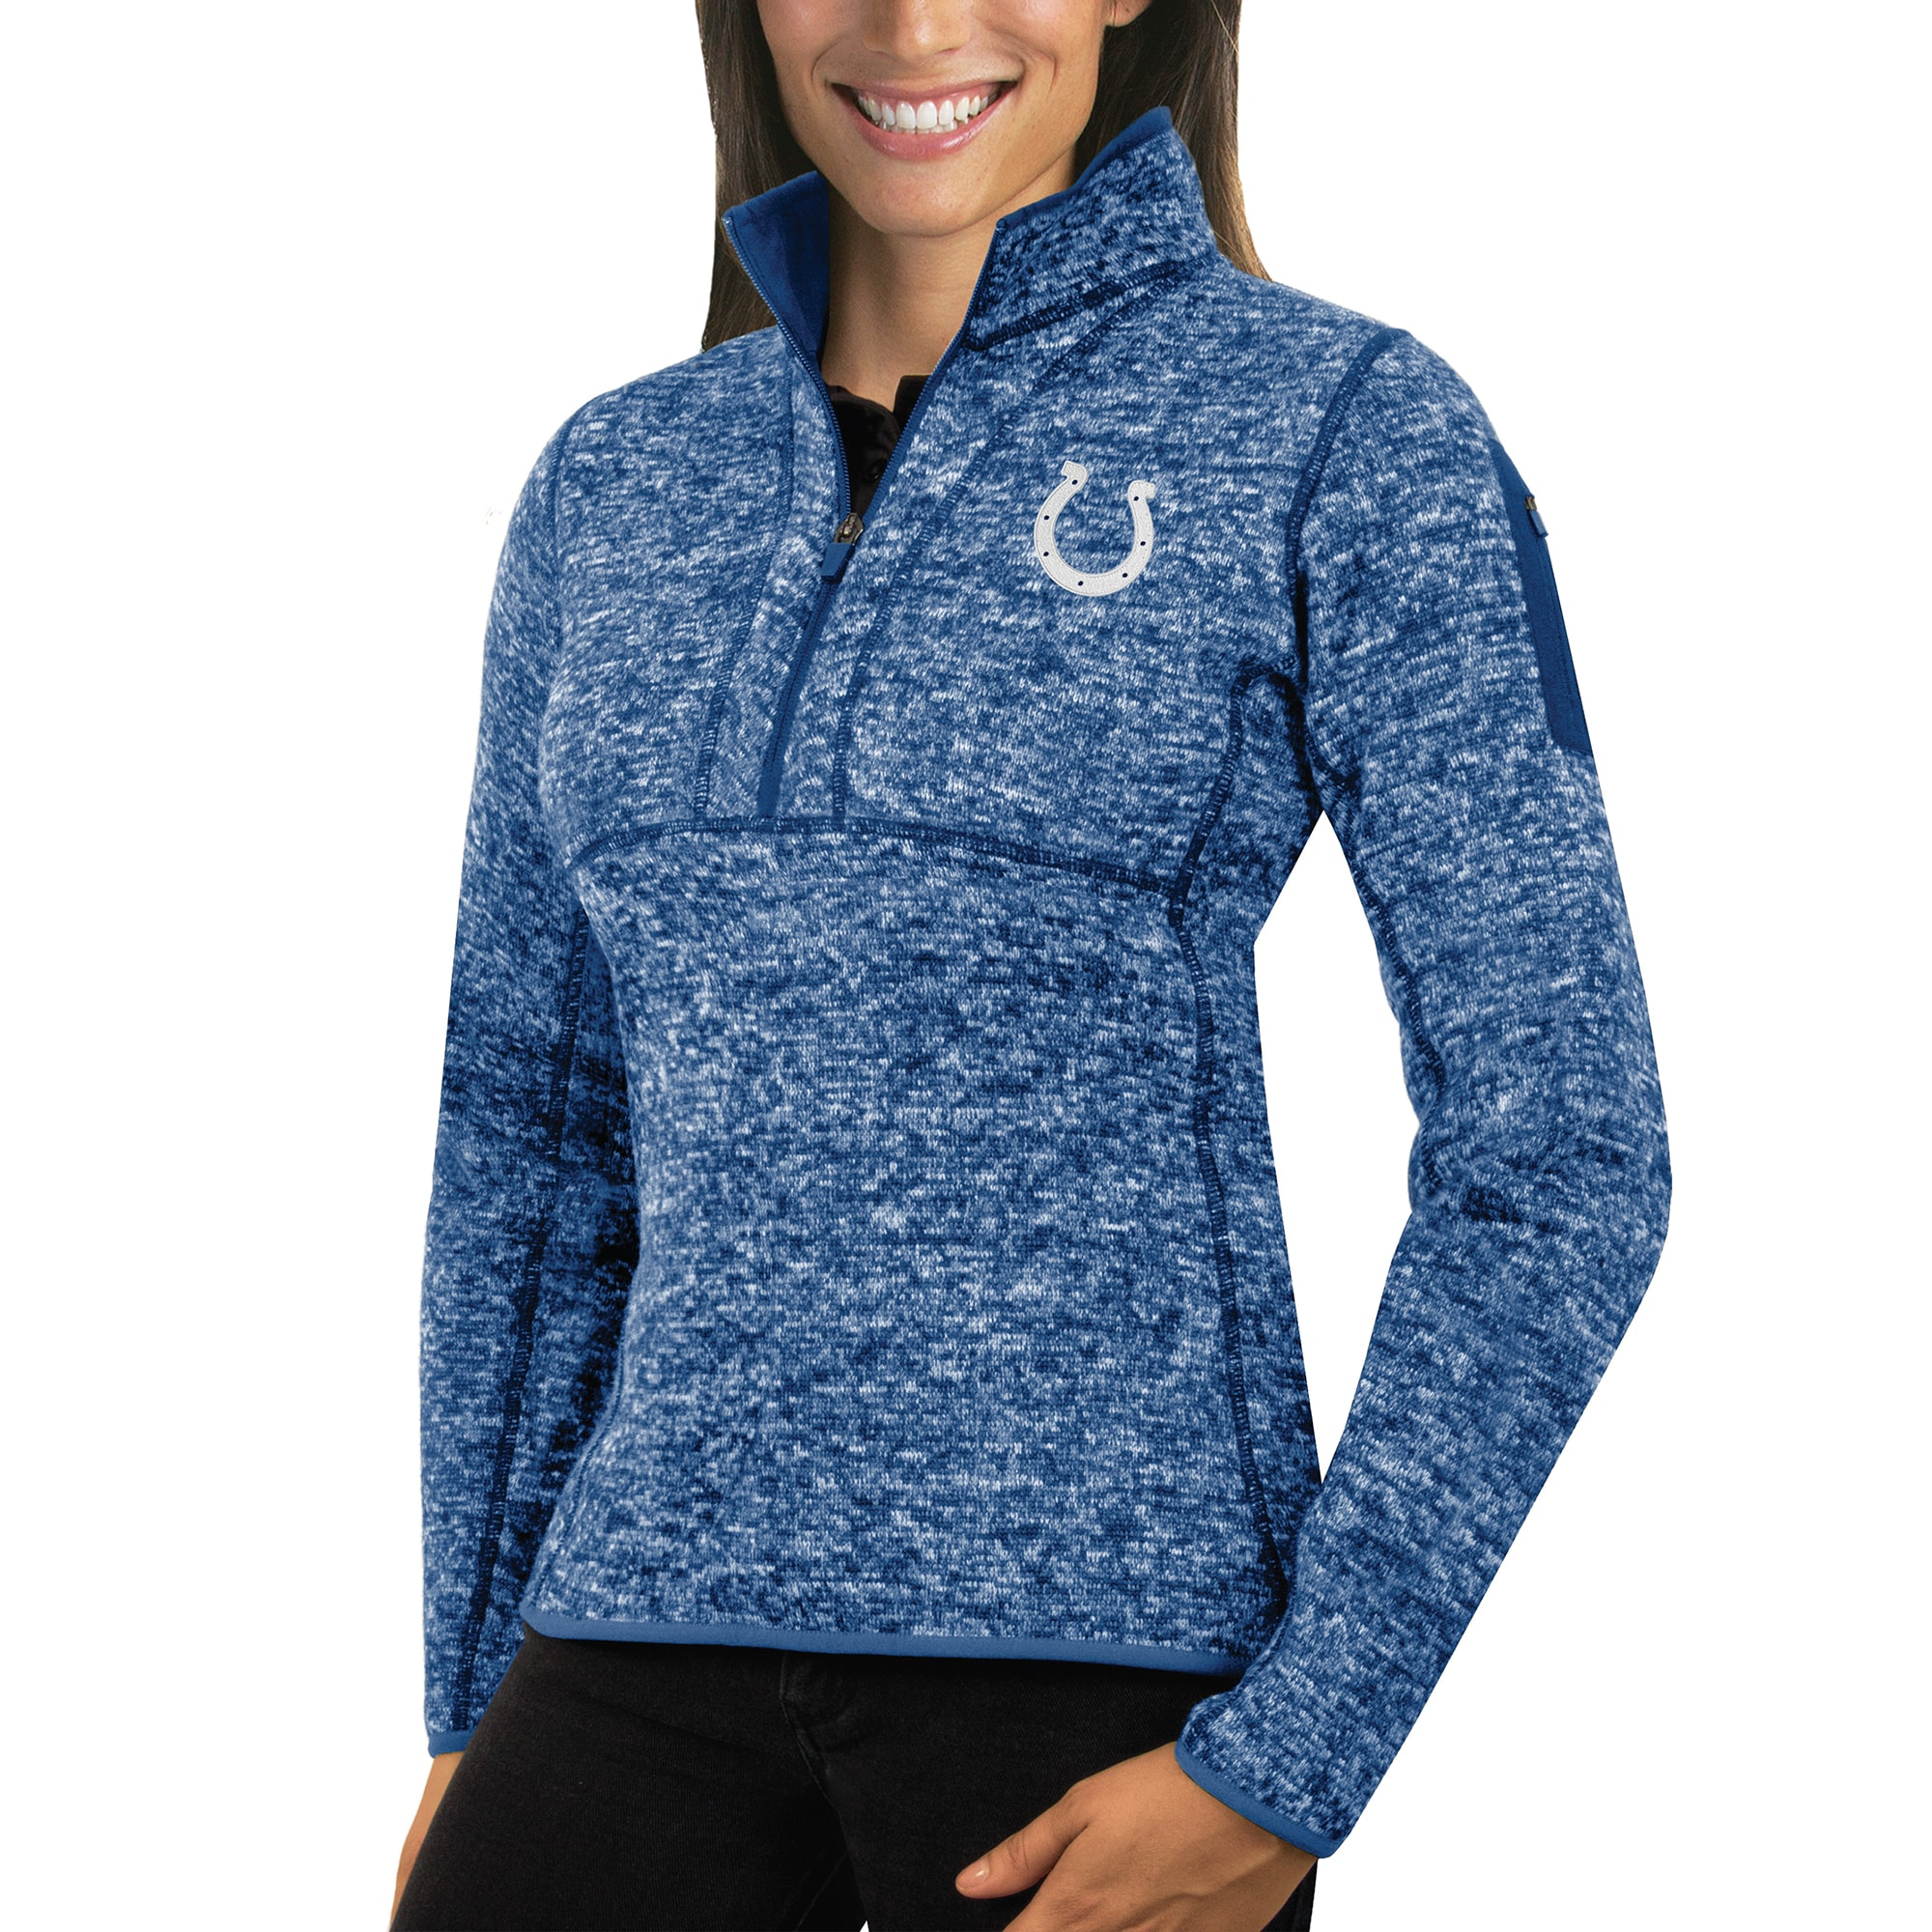 Indianapolis Colts Antigua Women's Fortune Half-Zip Sweater - Heathered Royal